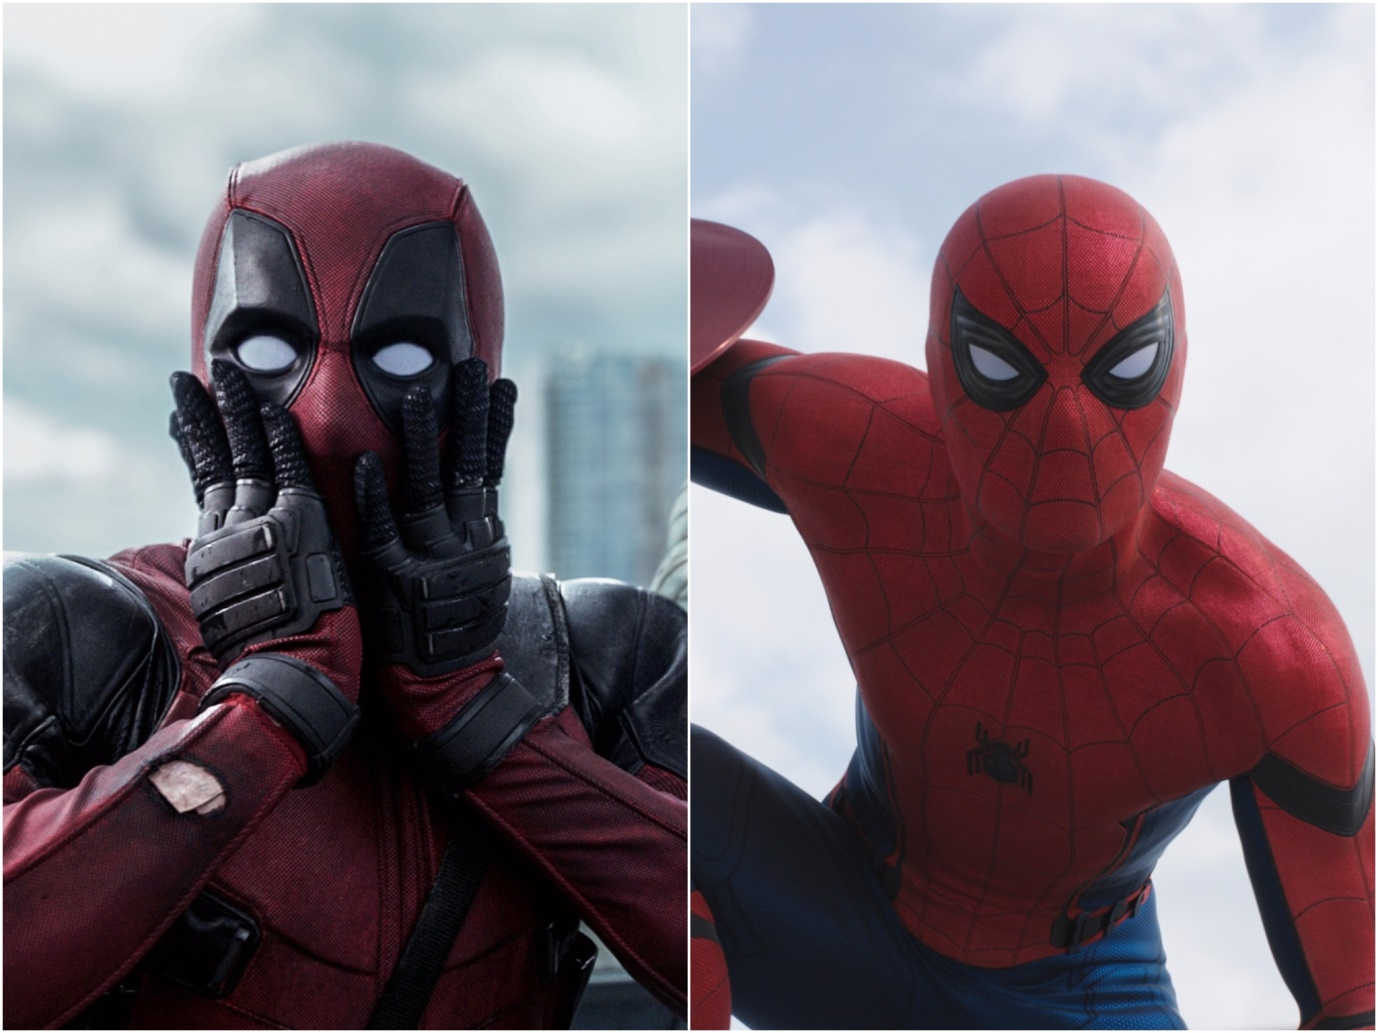 Spider Man Vs Deadpool Here S Why Deadpool Would Crush